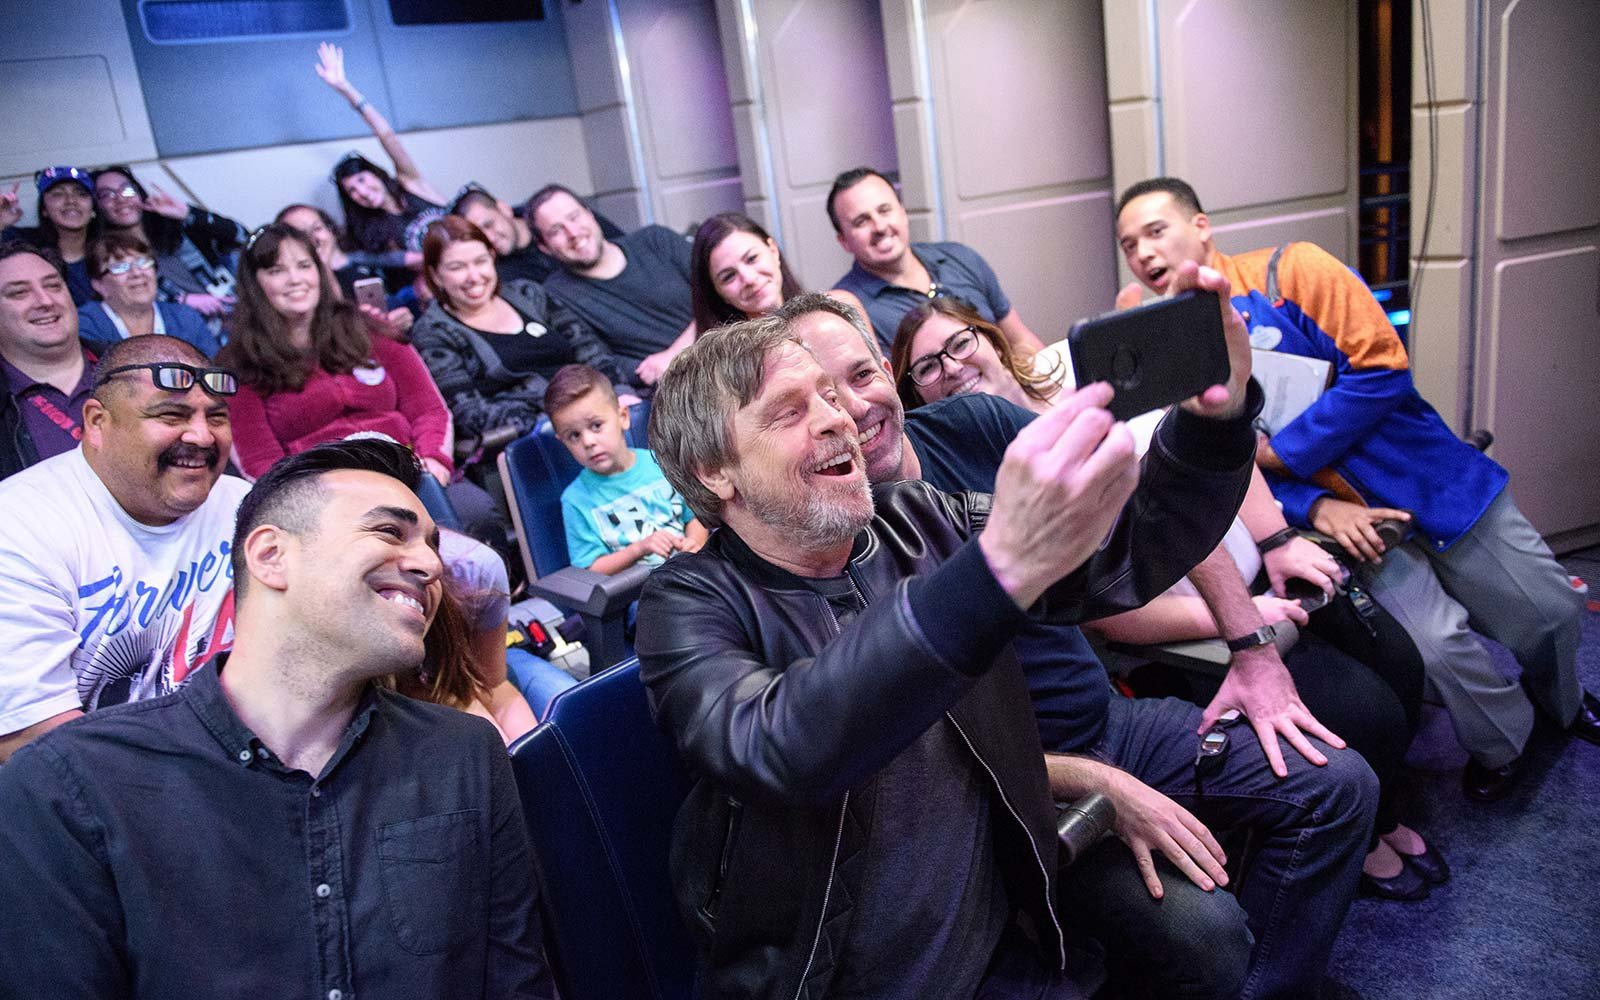 Disneyland's 'Star Tours' Guests Get a Special Luke Skywalker Surprise